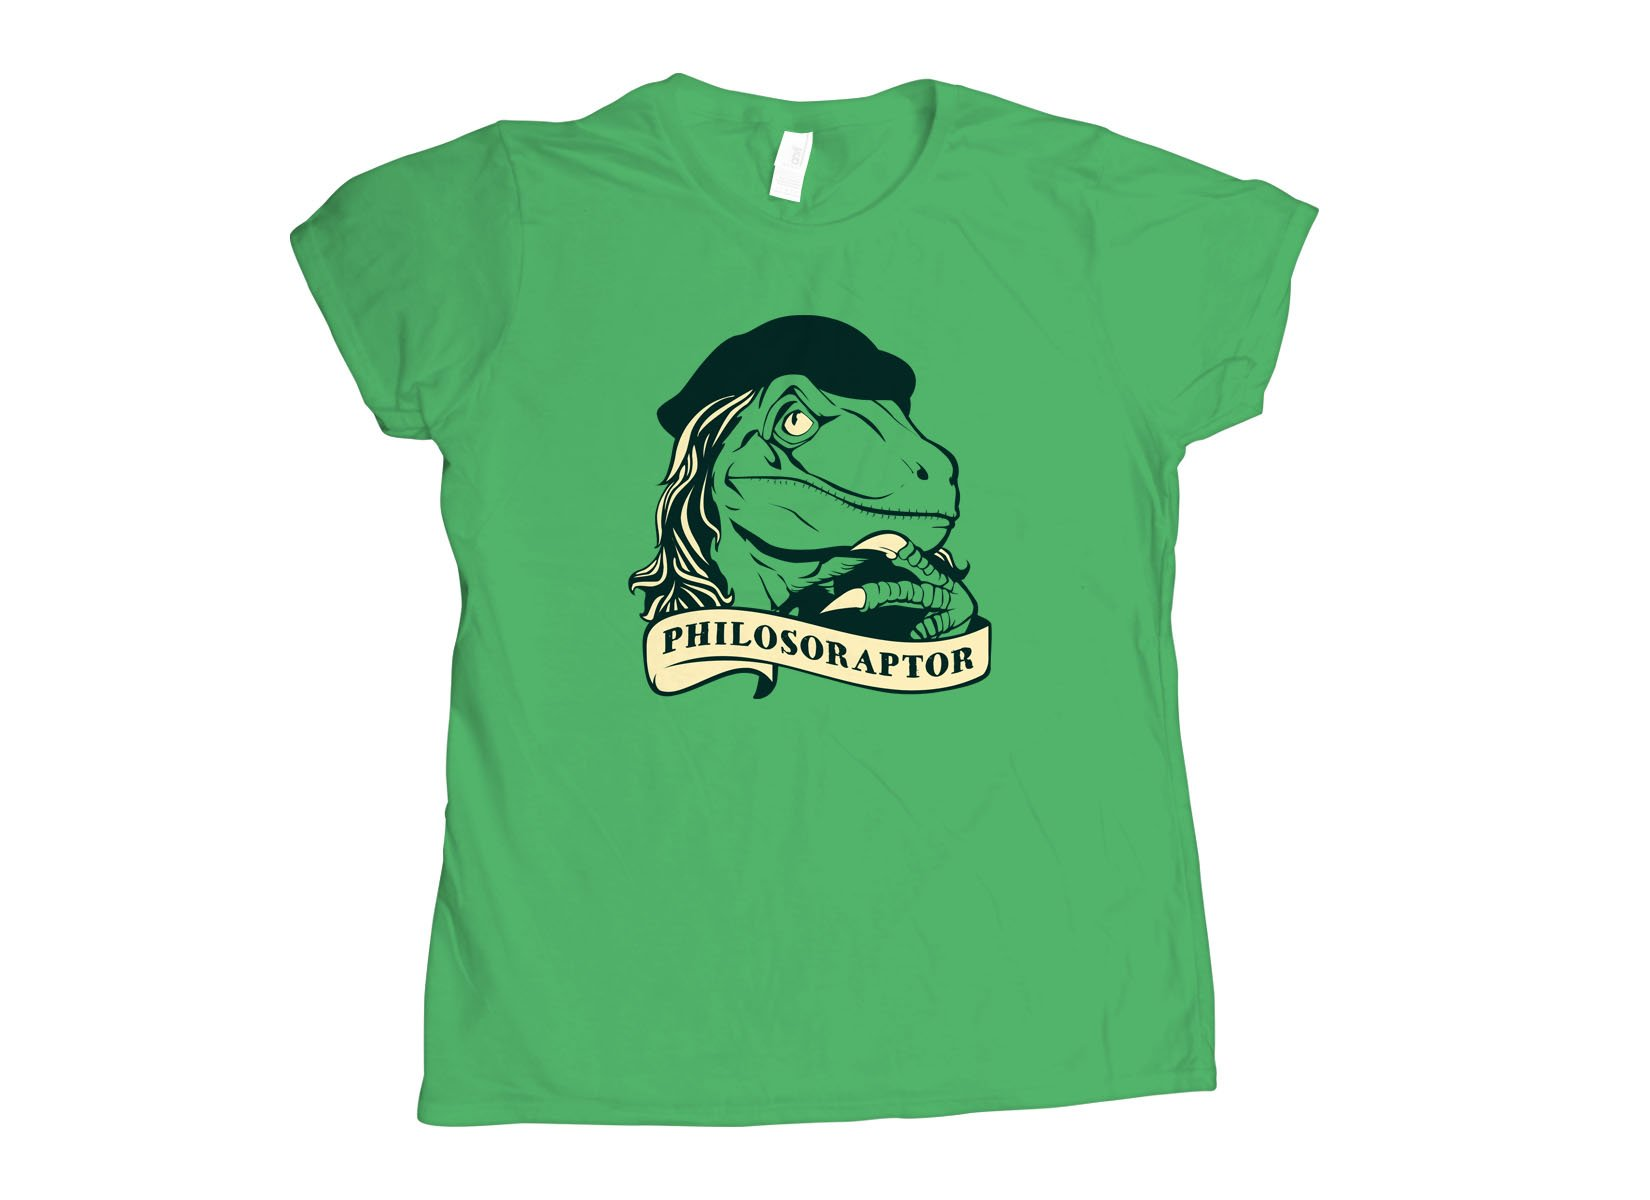 Philosoraptor on Womens T-Shirt